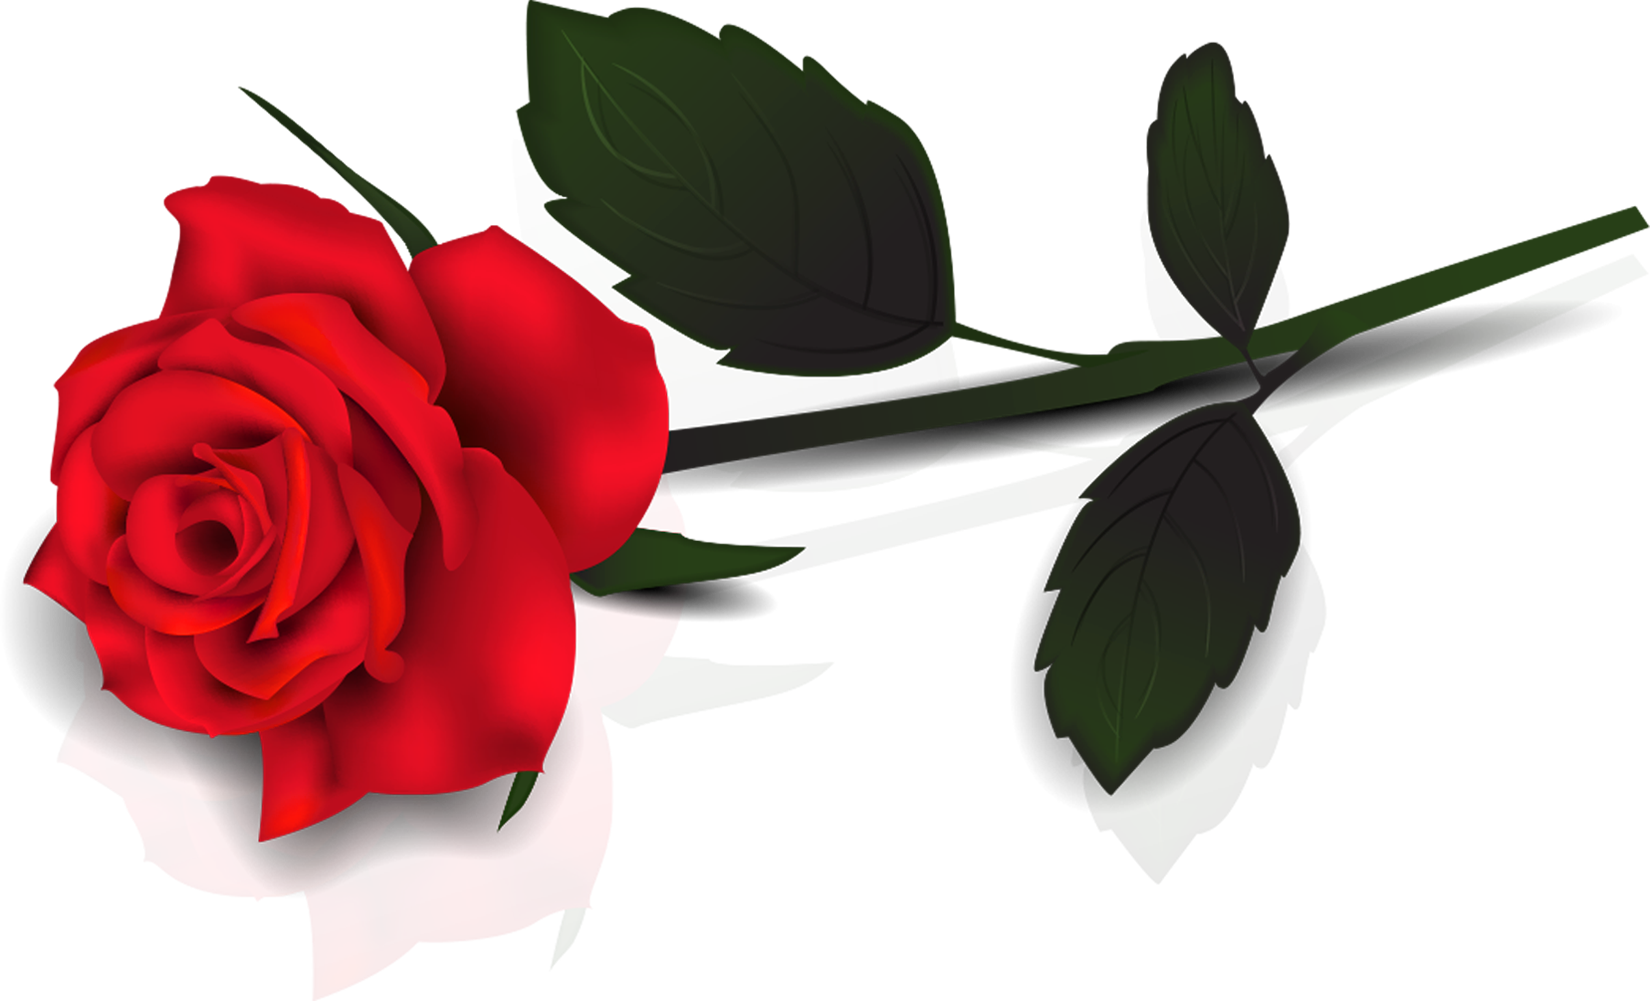 Rose flower clipart png graphic free library Single Rose Clipart - Clipart Kid graphic free library